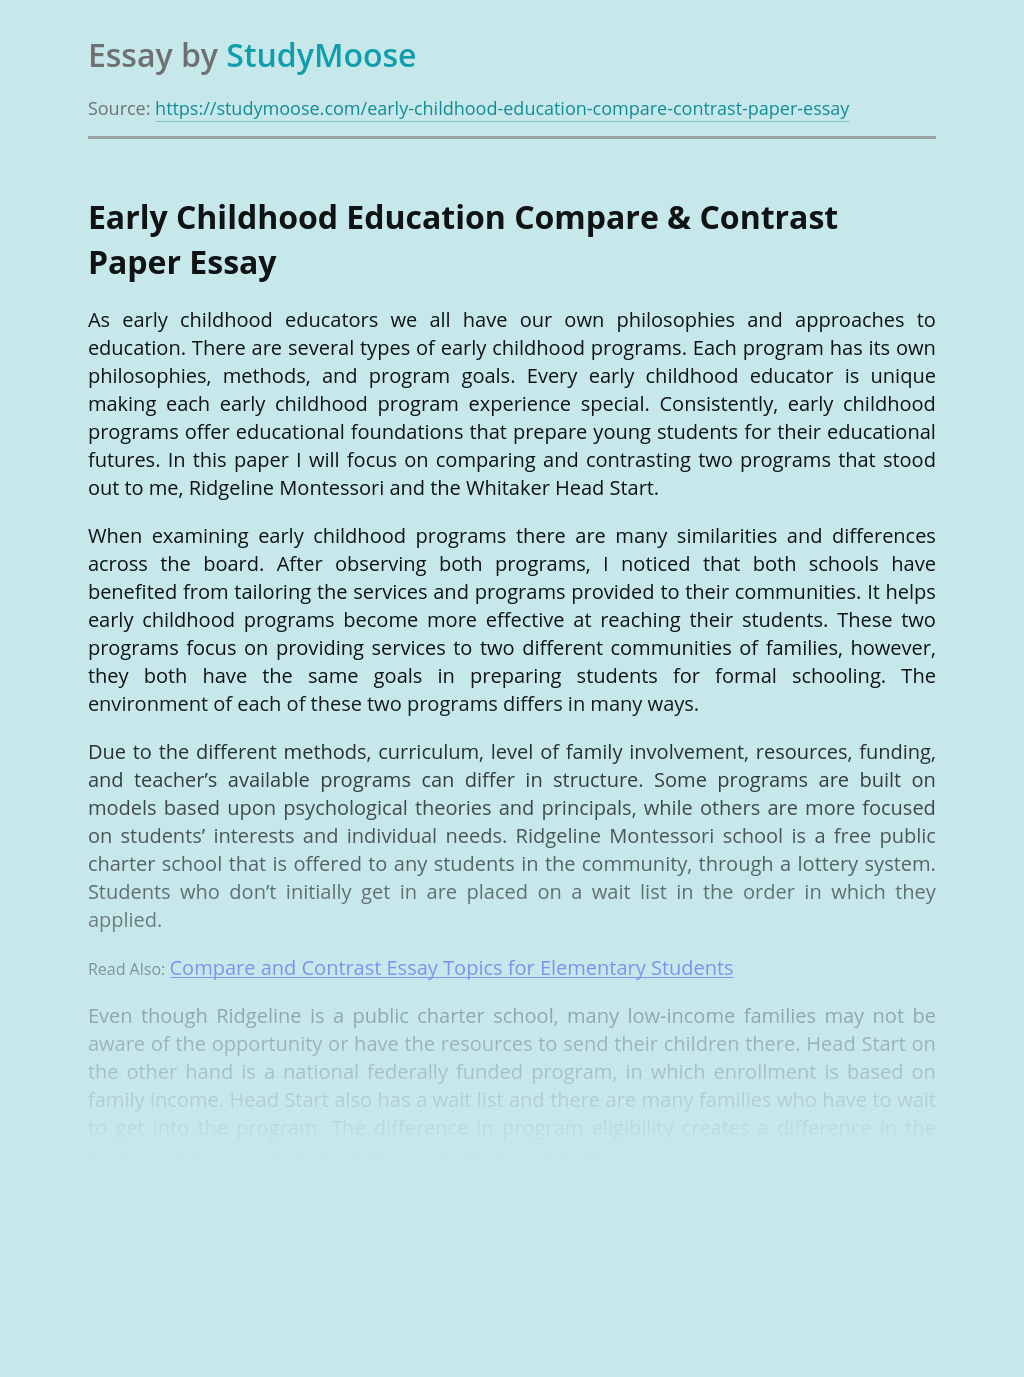 Early Childhood Education Compare & Contrast Paper